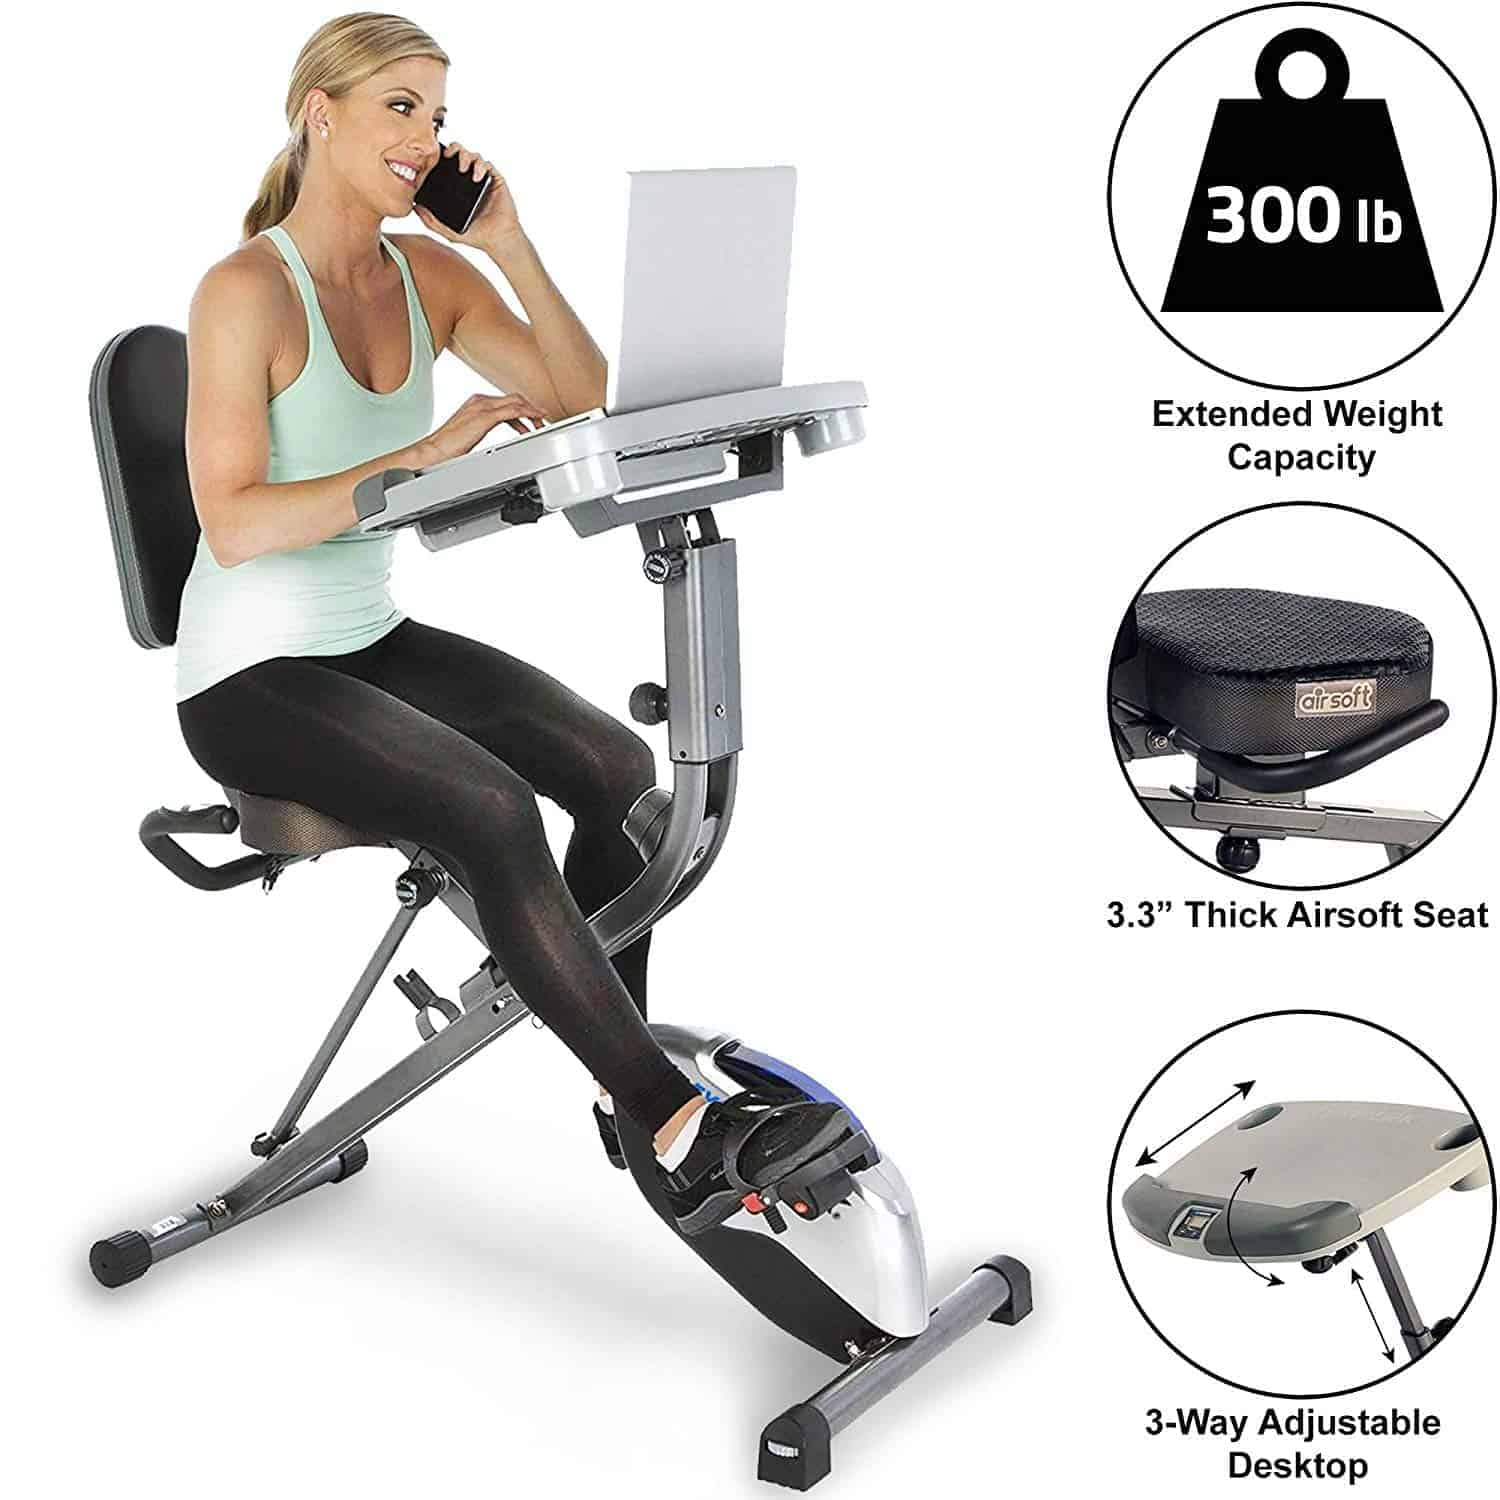 Exerpeutic ExerWorK 1000 desk bike